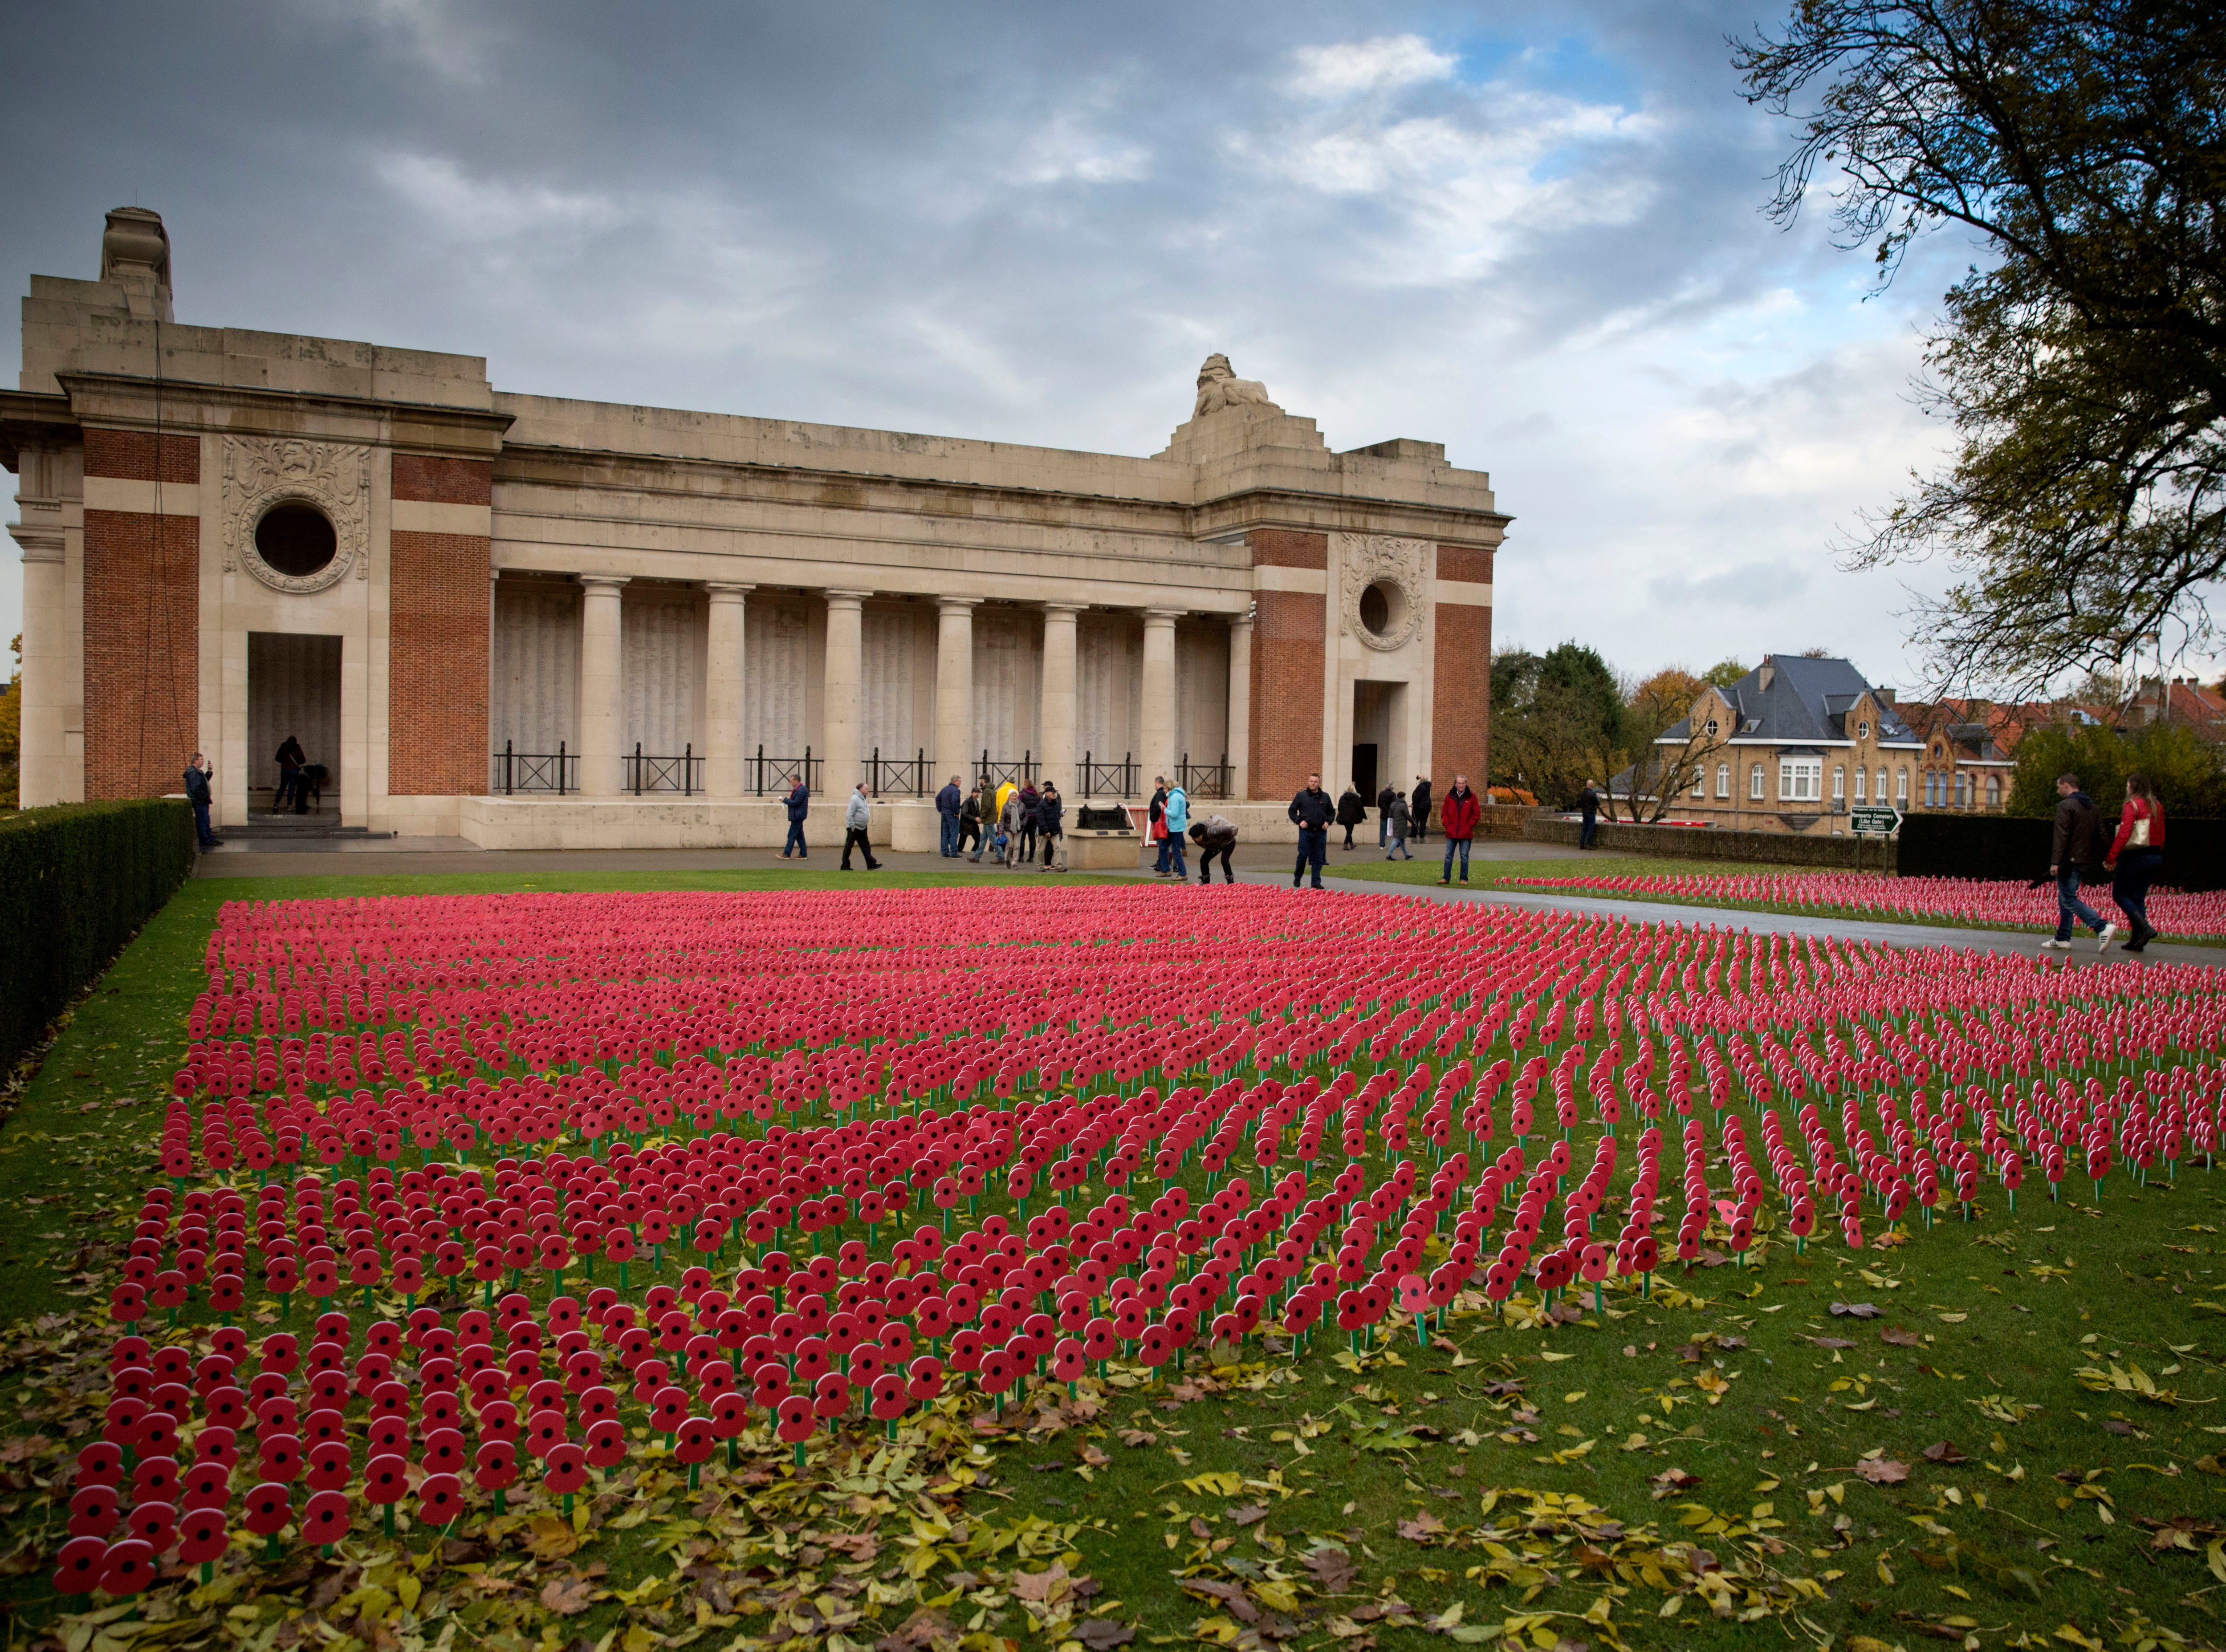 Paper poppies fill a field outside the Menin Gate in Ypres, Belgium, Saturday, Nov. 10, 2018. The walls of the Menin Gate bear the names of more than 54,000 World War I soldiers who died before Aug. 16, 1917 and have no known grave.